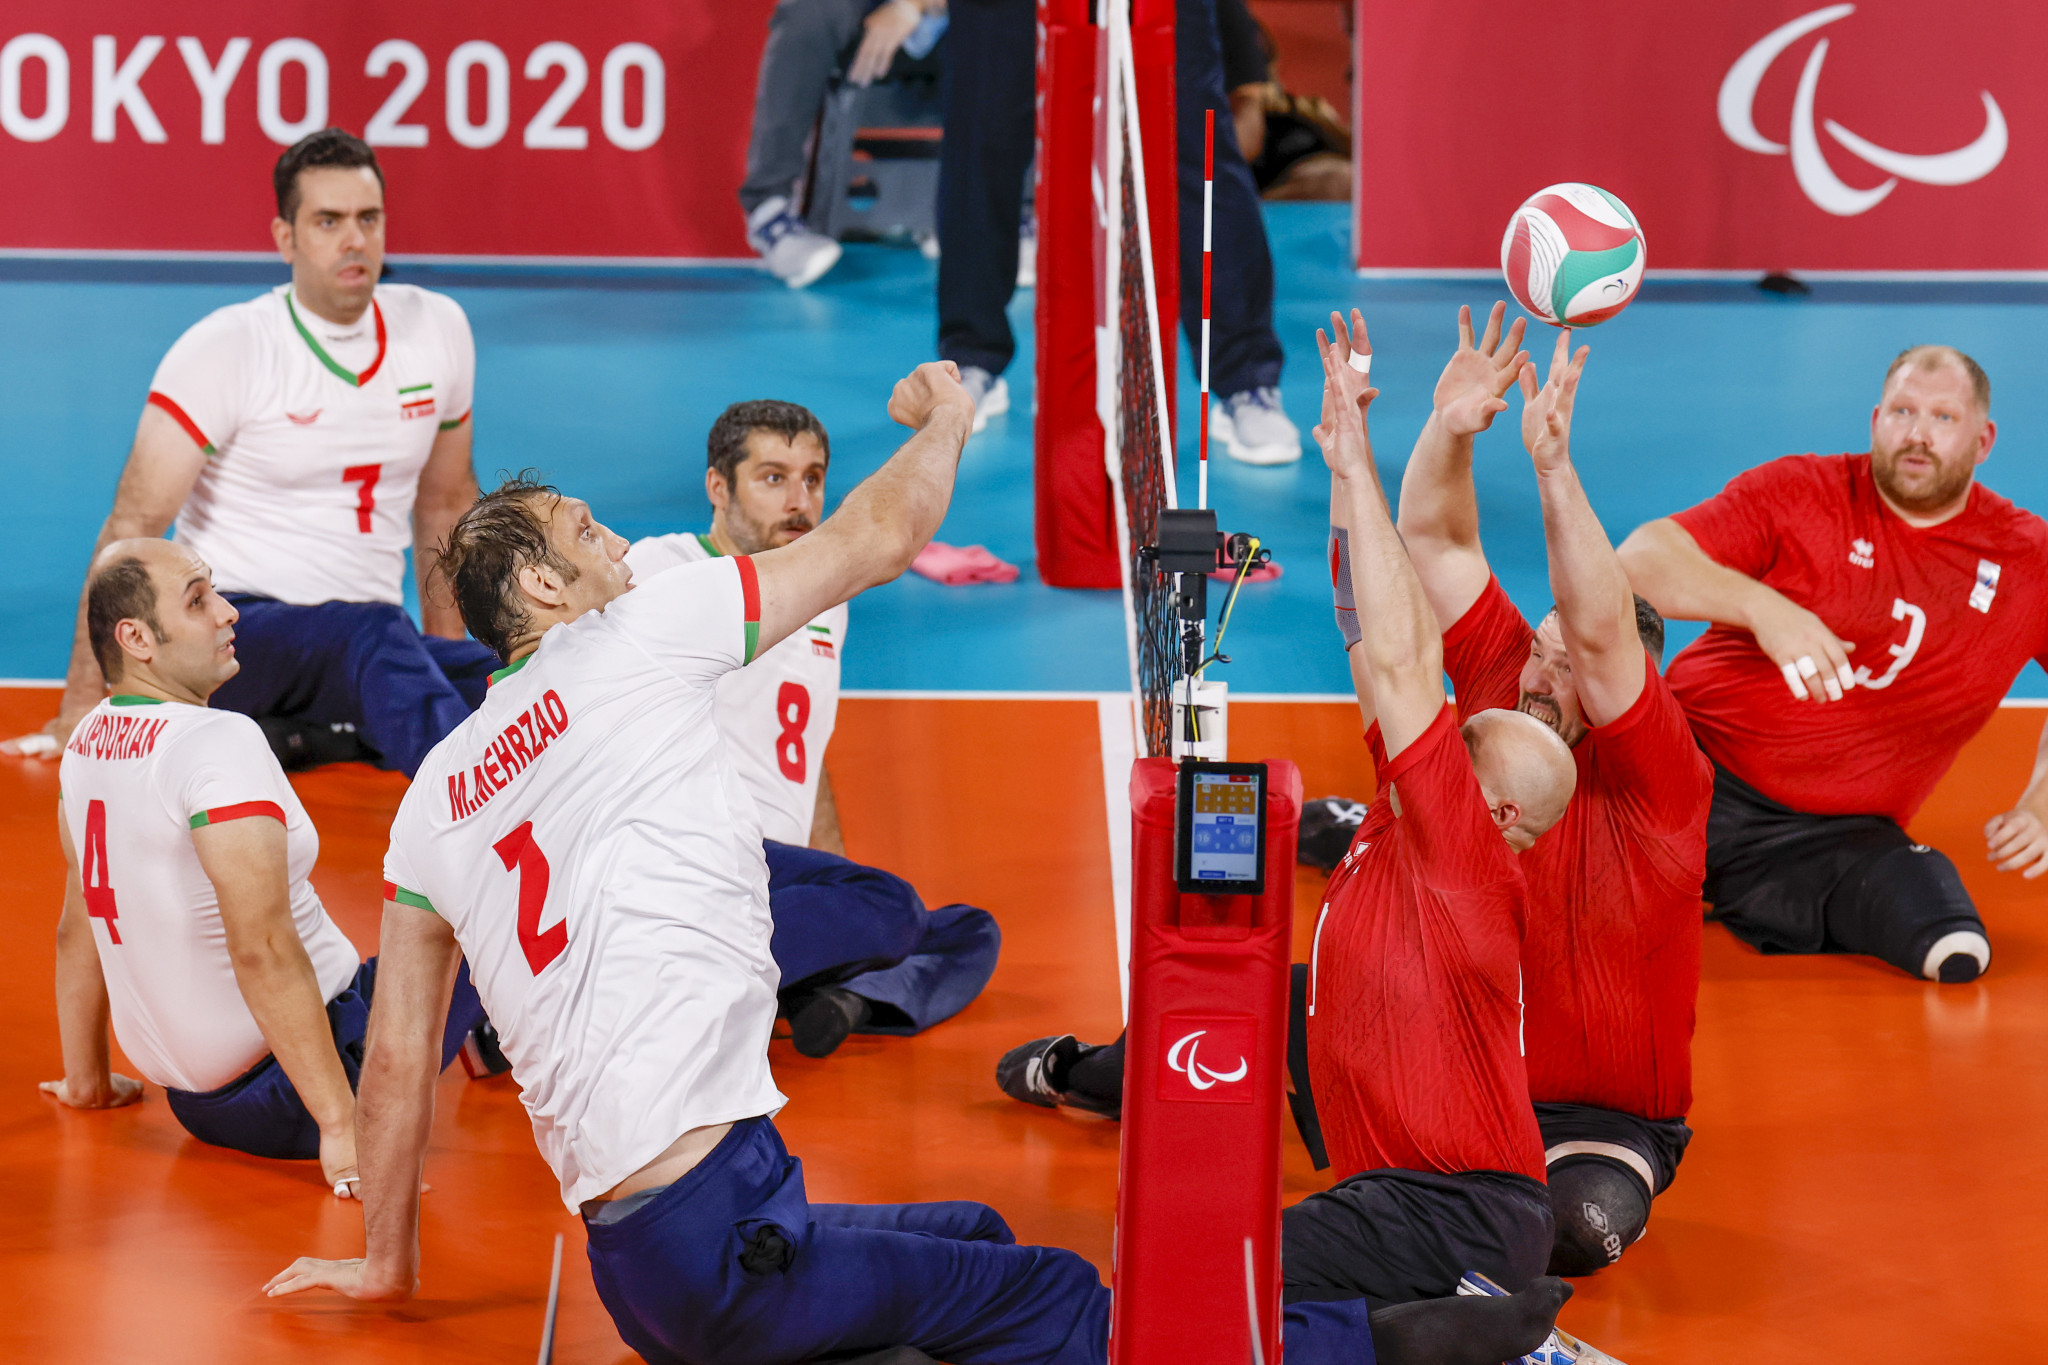 Russia aim for triple titles in men's and women's European Sitting Volleyball Championships